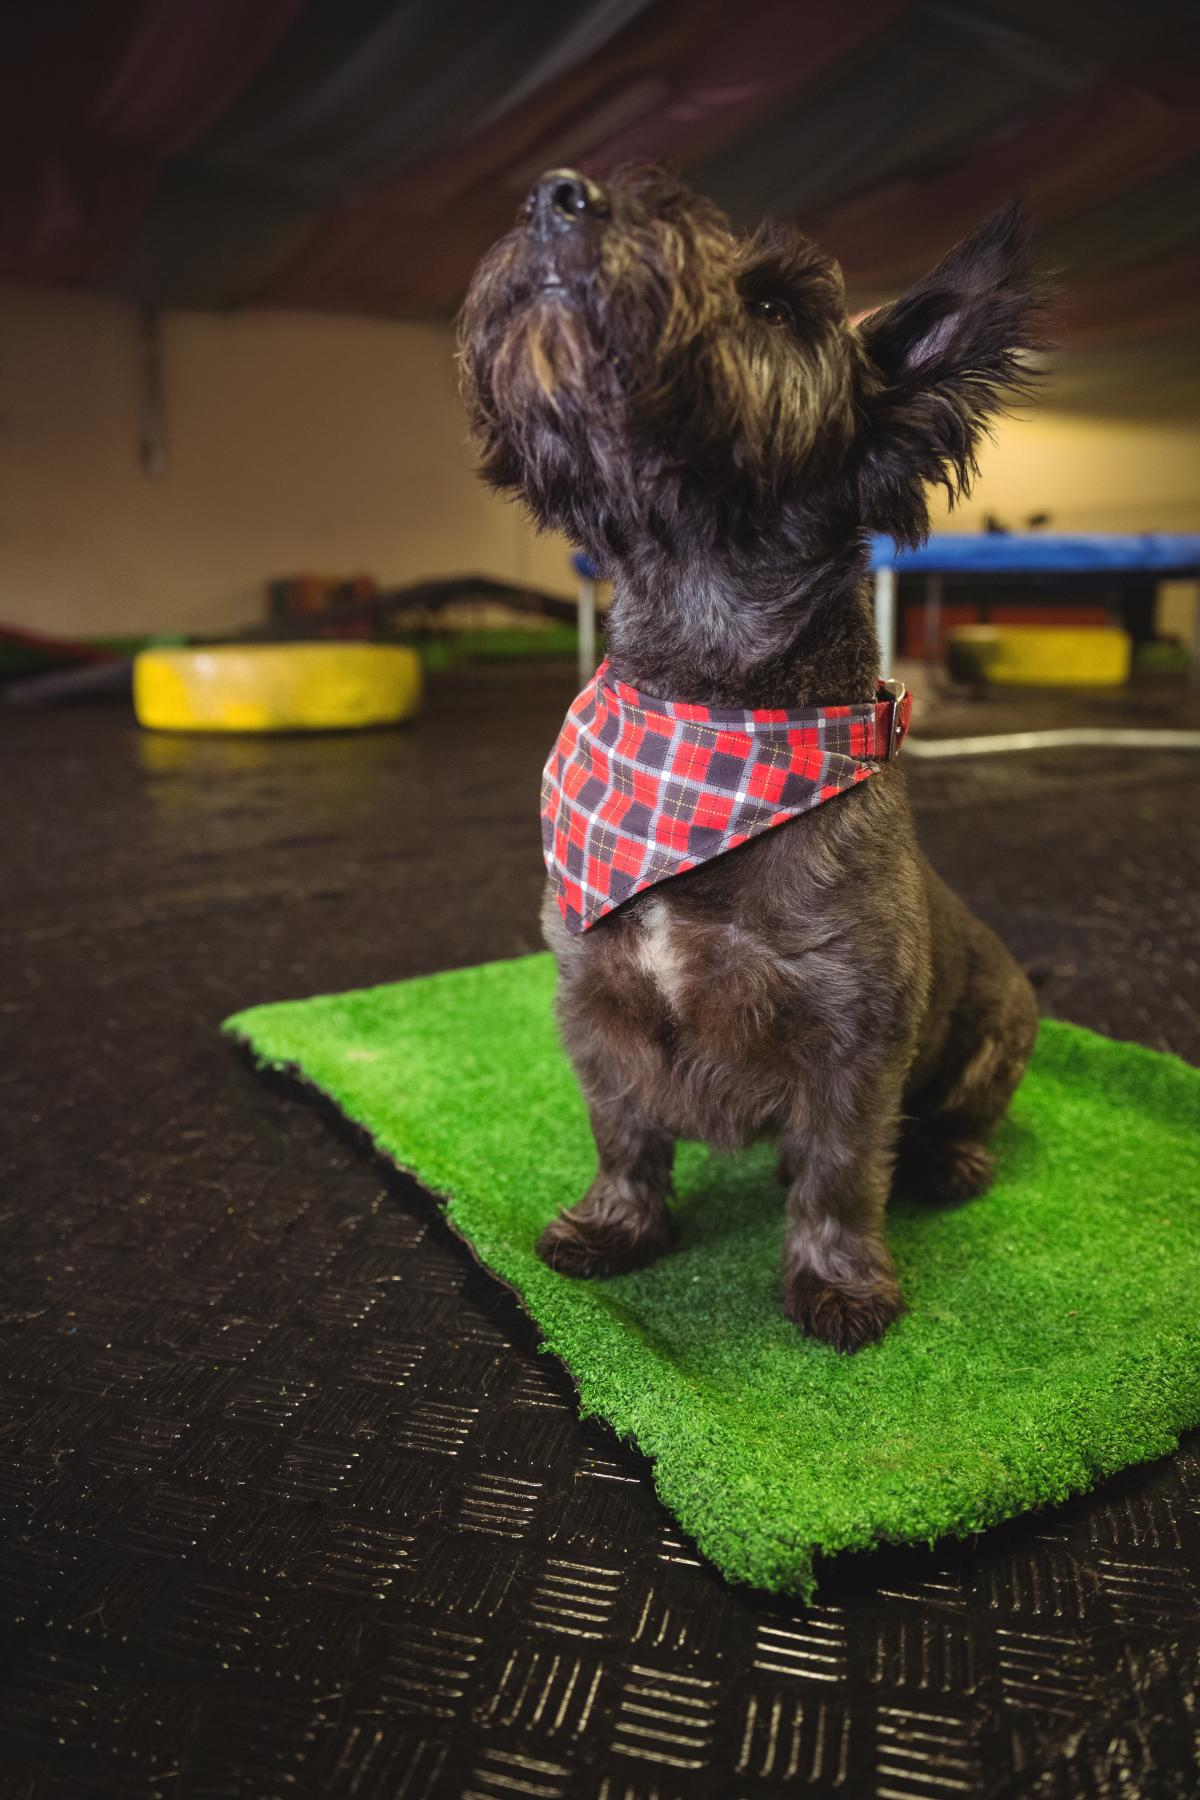 Shih tzu puppy sitting on mat and looking up #408819